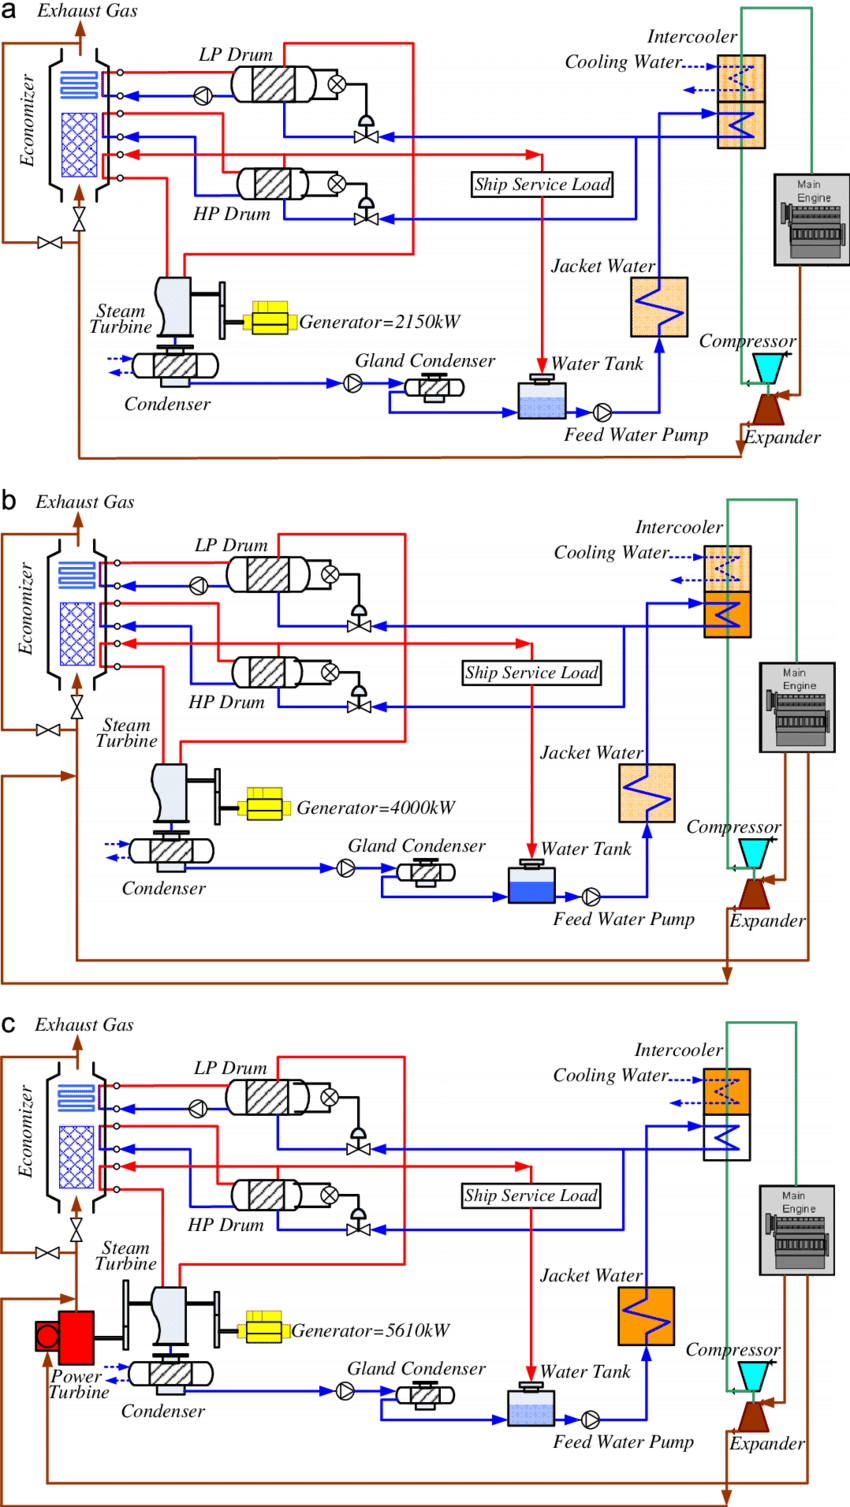 medium resolution of  a dural pressure boiler b system diagram with exhaust gas bypass